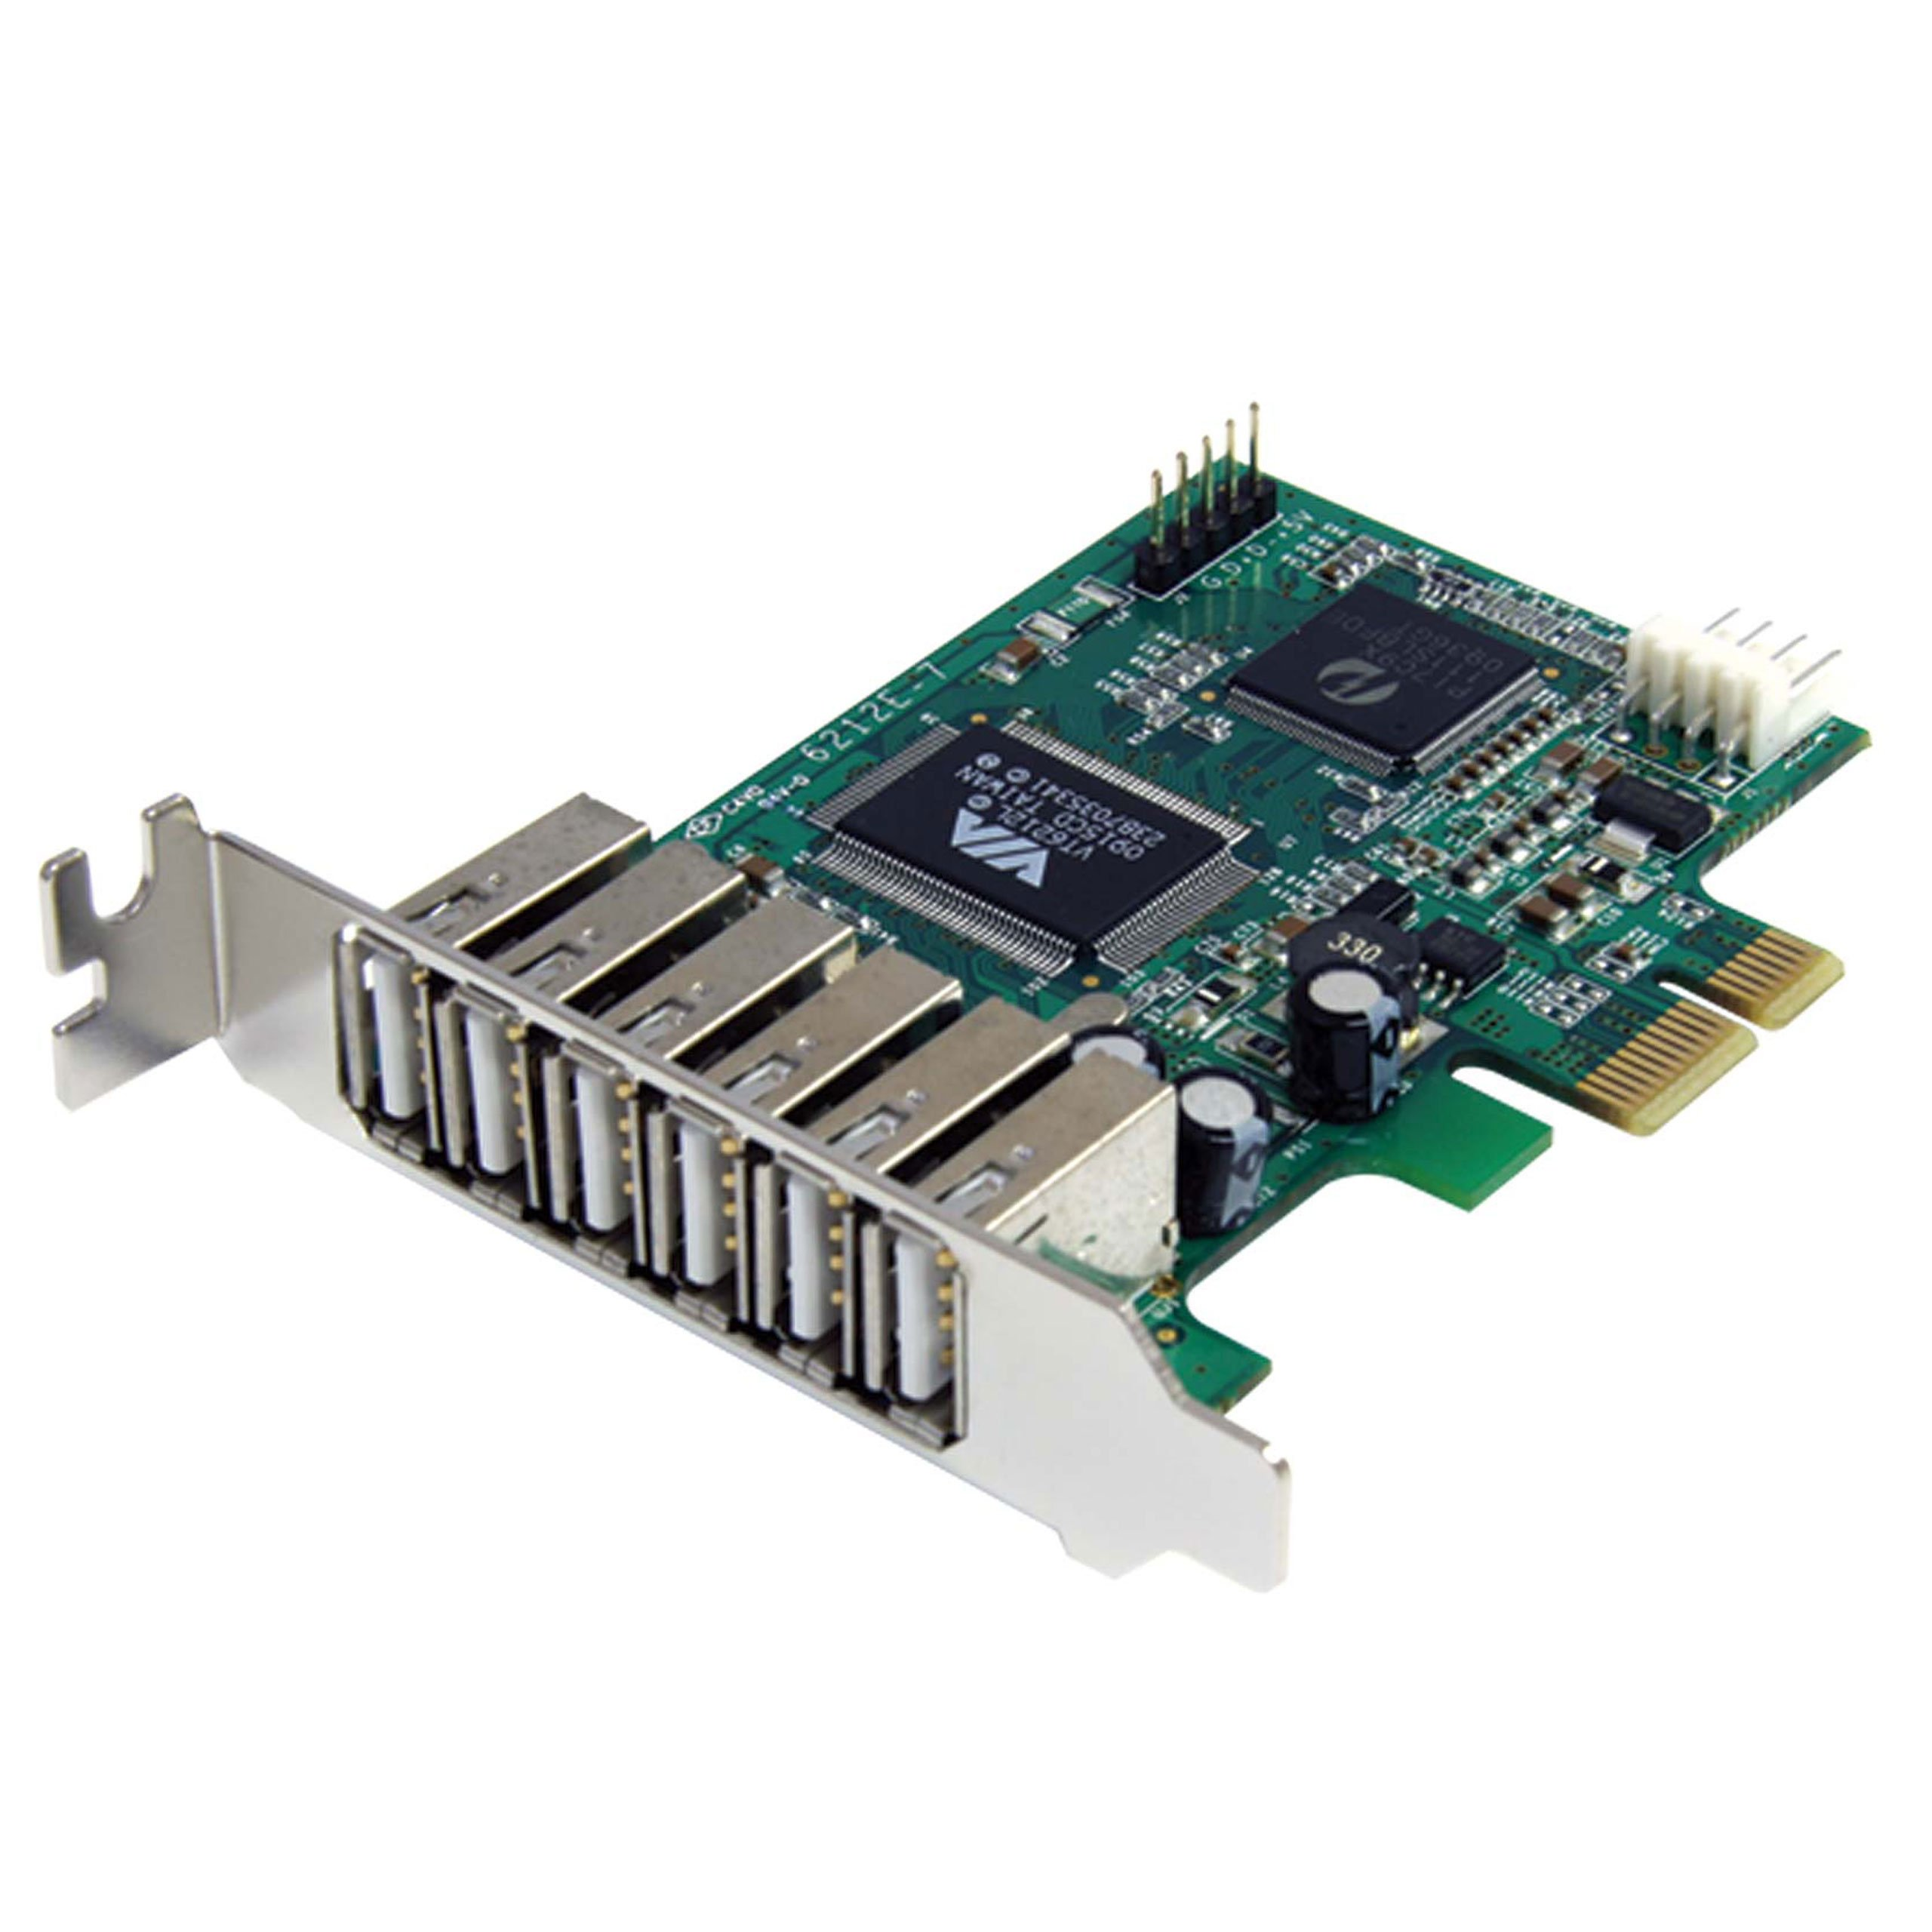 StarTech.com 7 Port PCI Express Low Profile High Speed USB 2.0 Adapter Card - PCIe USB 2.0 Card - PCI-E USB 2.0 Card